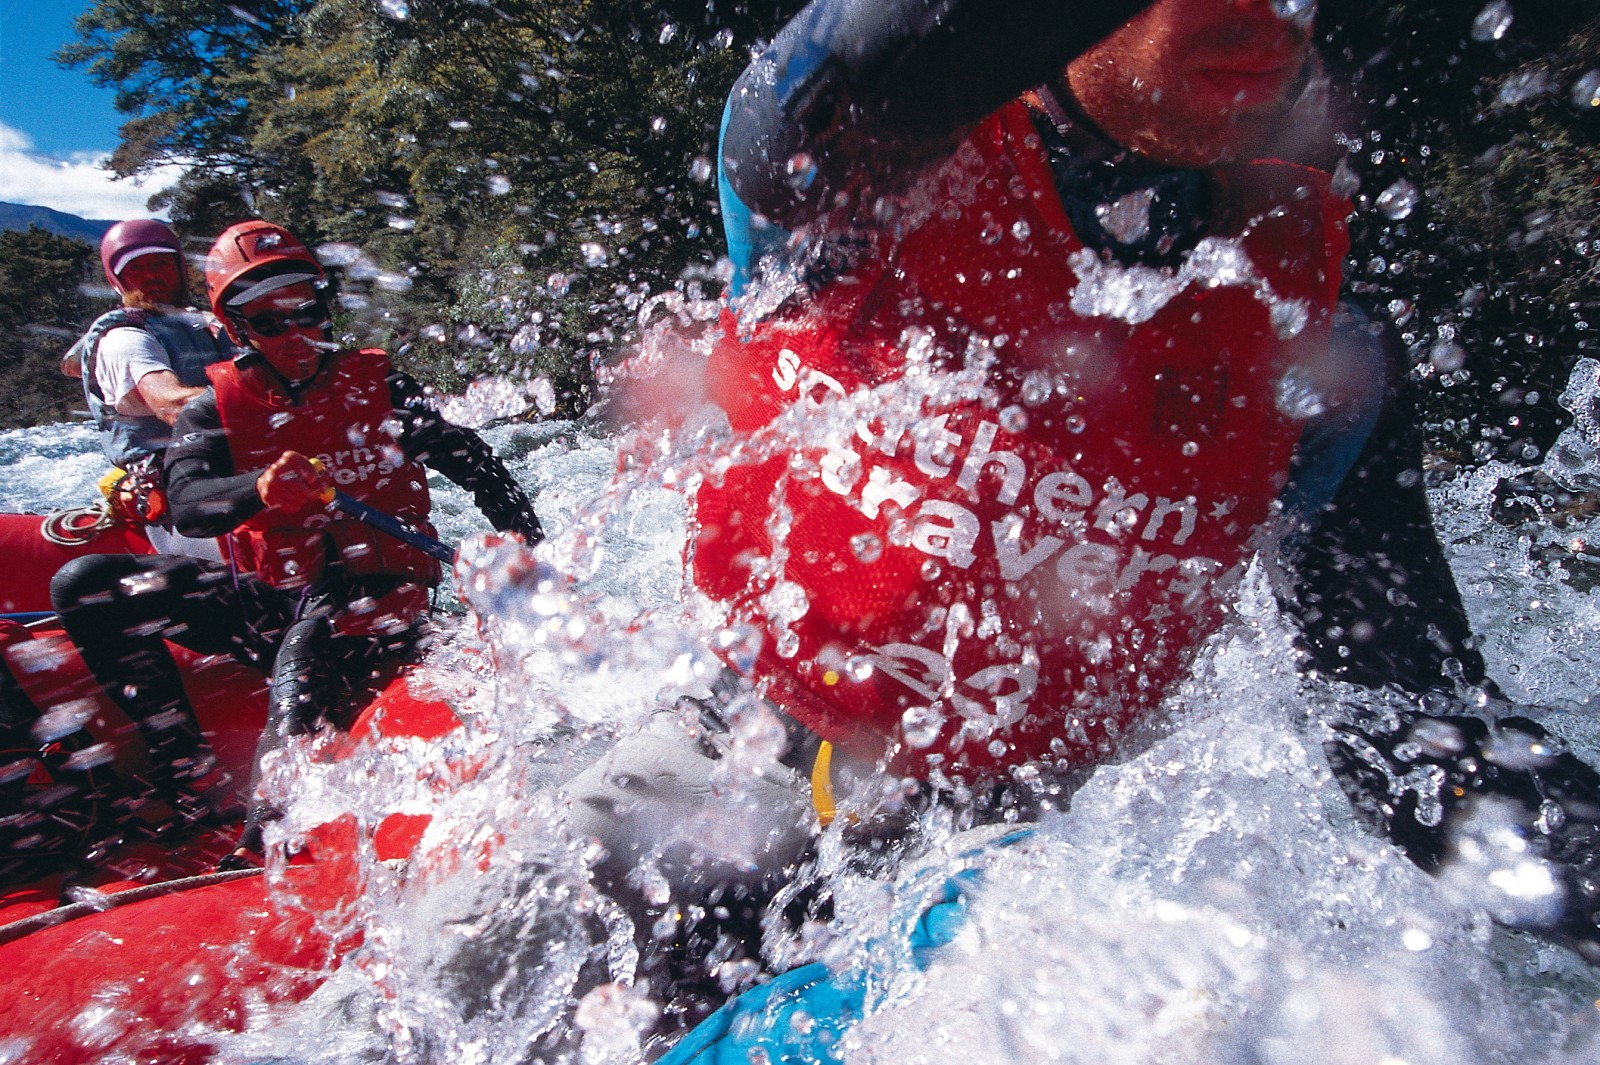 The splash of the river, the pull of the paddle, the rush of adrenalin—these are the moments that keep racers coming back year after year to compete in New Zealand's toughest endurance race.